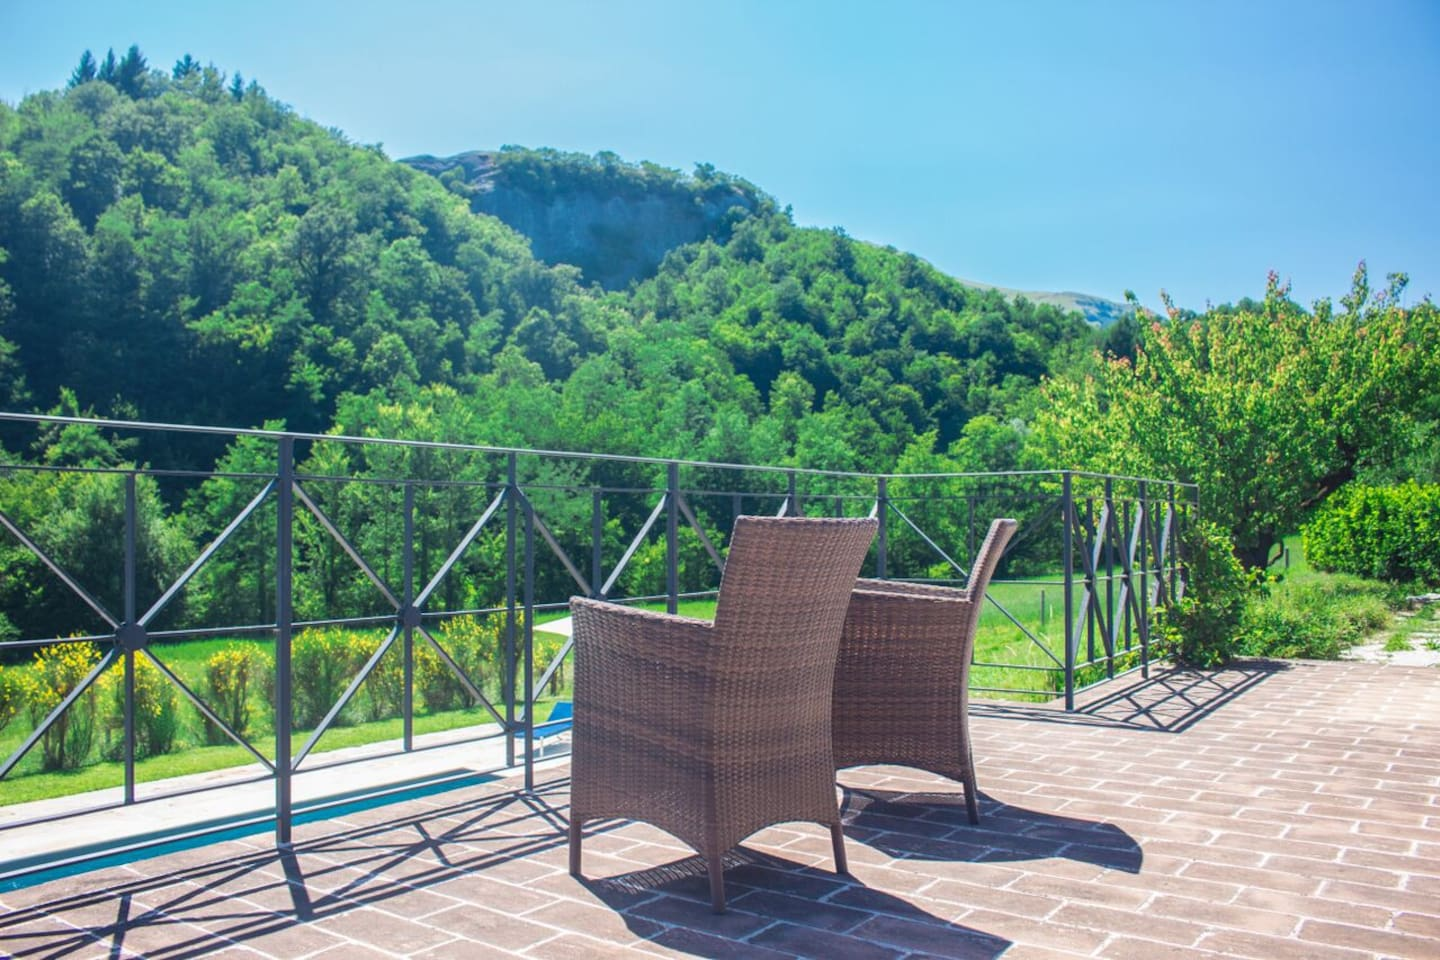 Villa nestled in secluded valley with grand terrace overlooking private pool